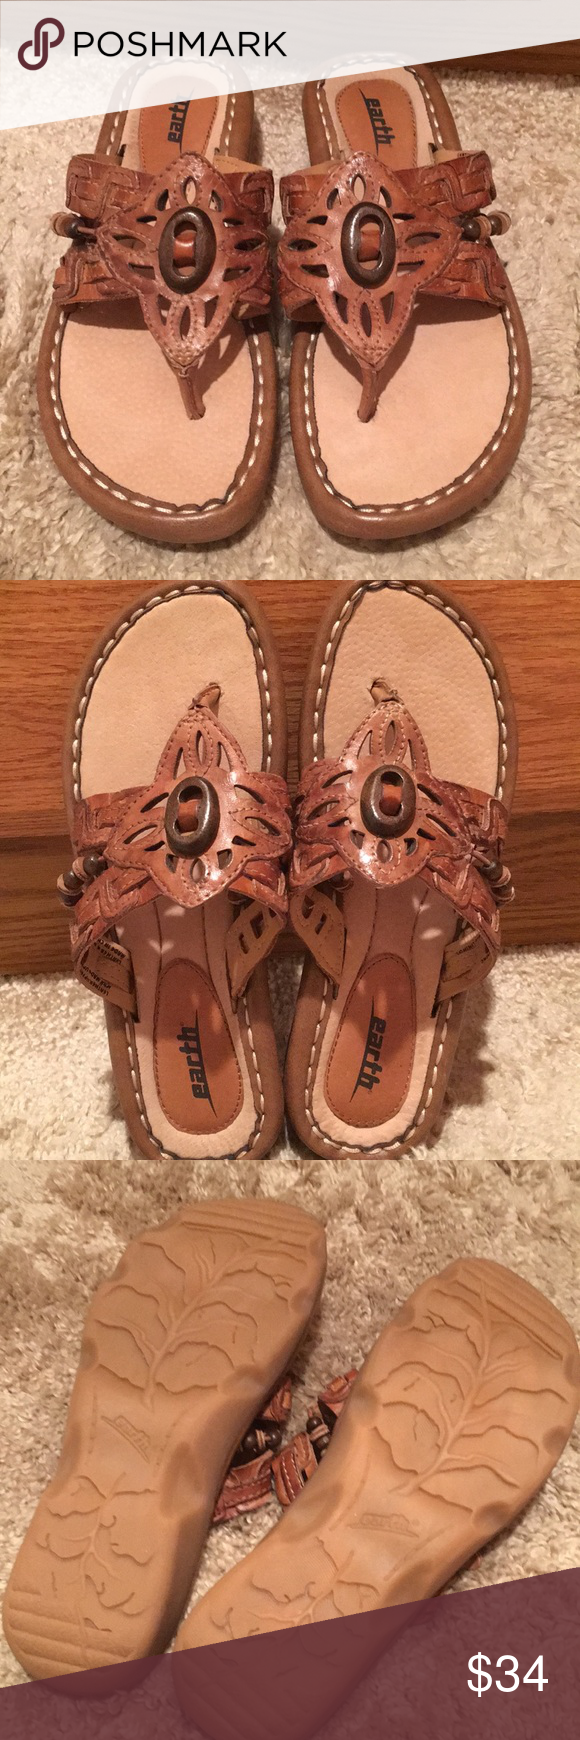 3ac56579e01 New Earth shoes wander brown thongs sandals 6 New NWOB Earth shoes sandals  wander sand brown size 6